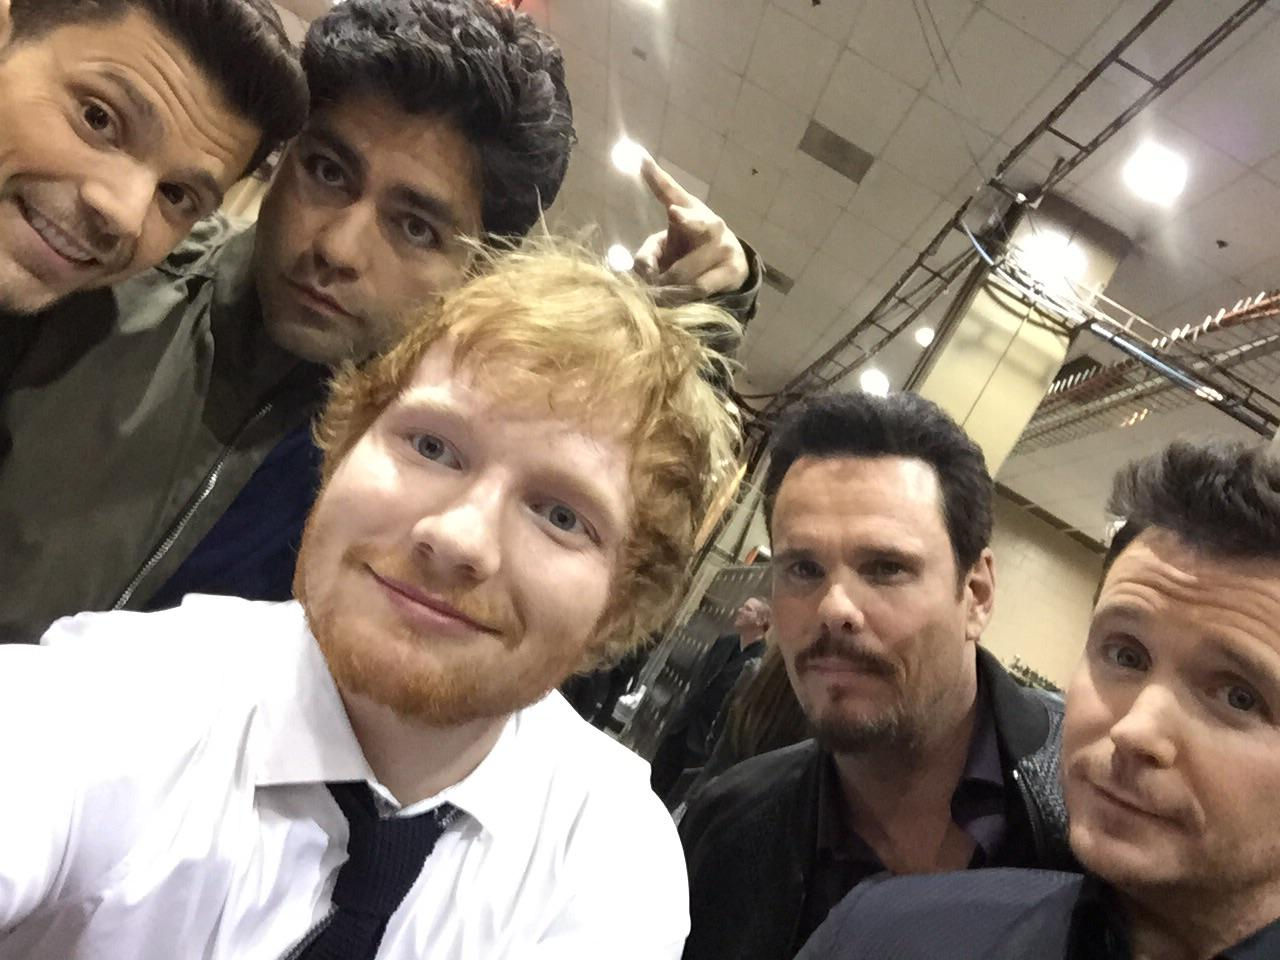 RT @edsheeran: I'm part of the gang http://t.co/mLxwtd46Zg